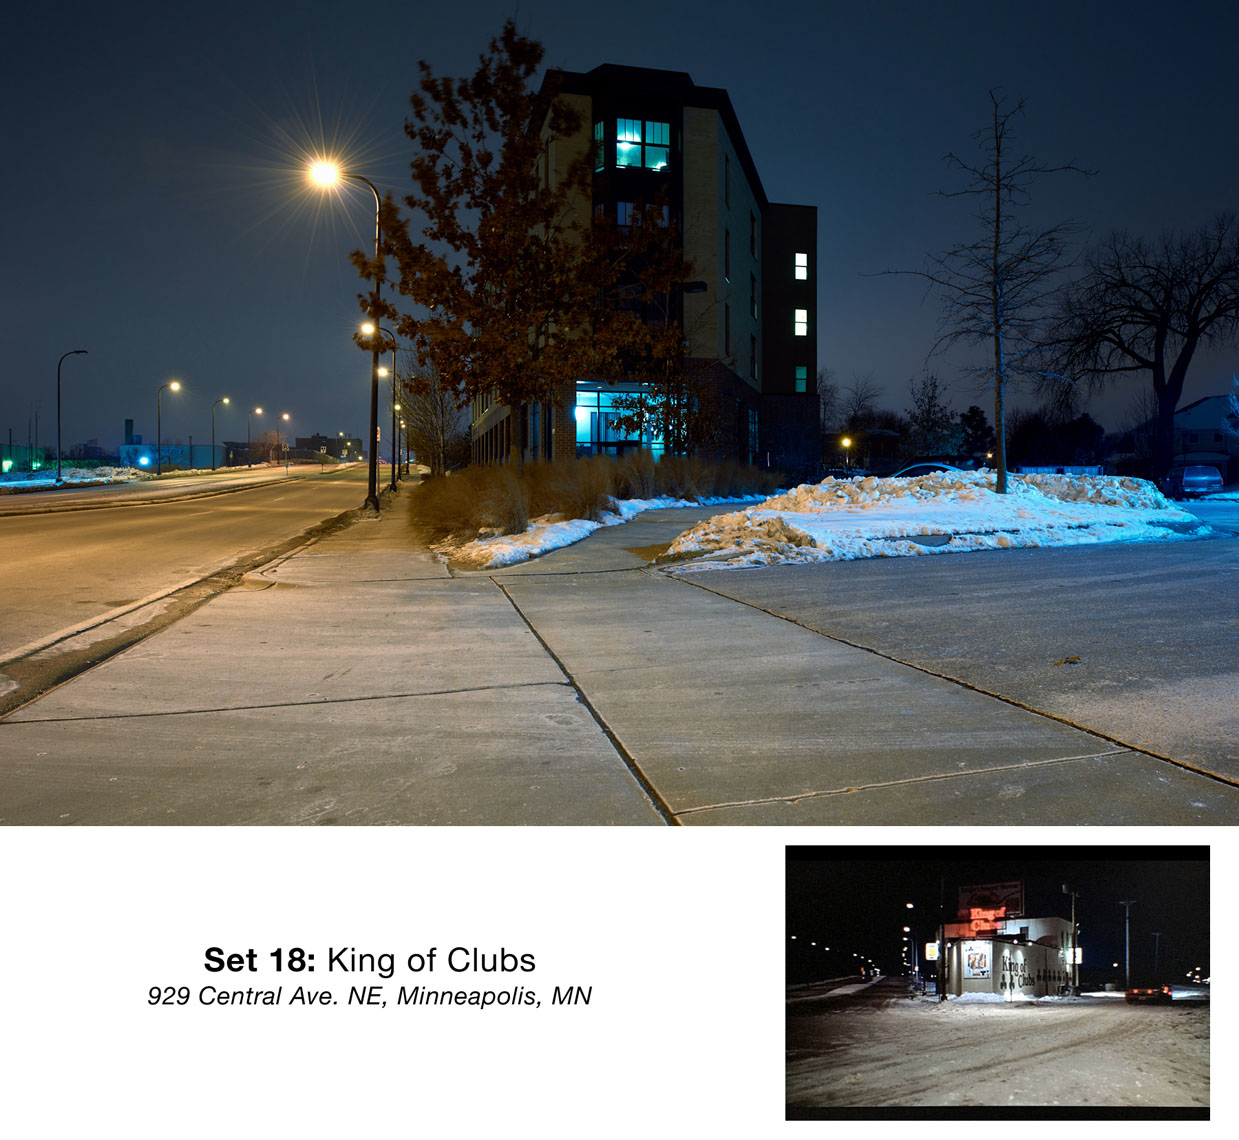 bowman_fargo-the-movie-locations-minnesota_10